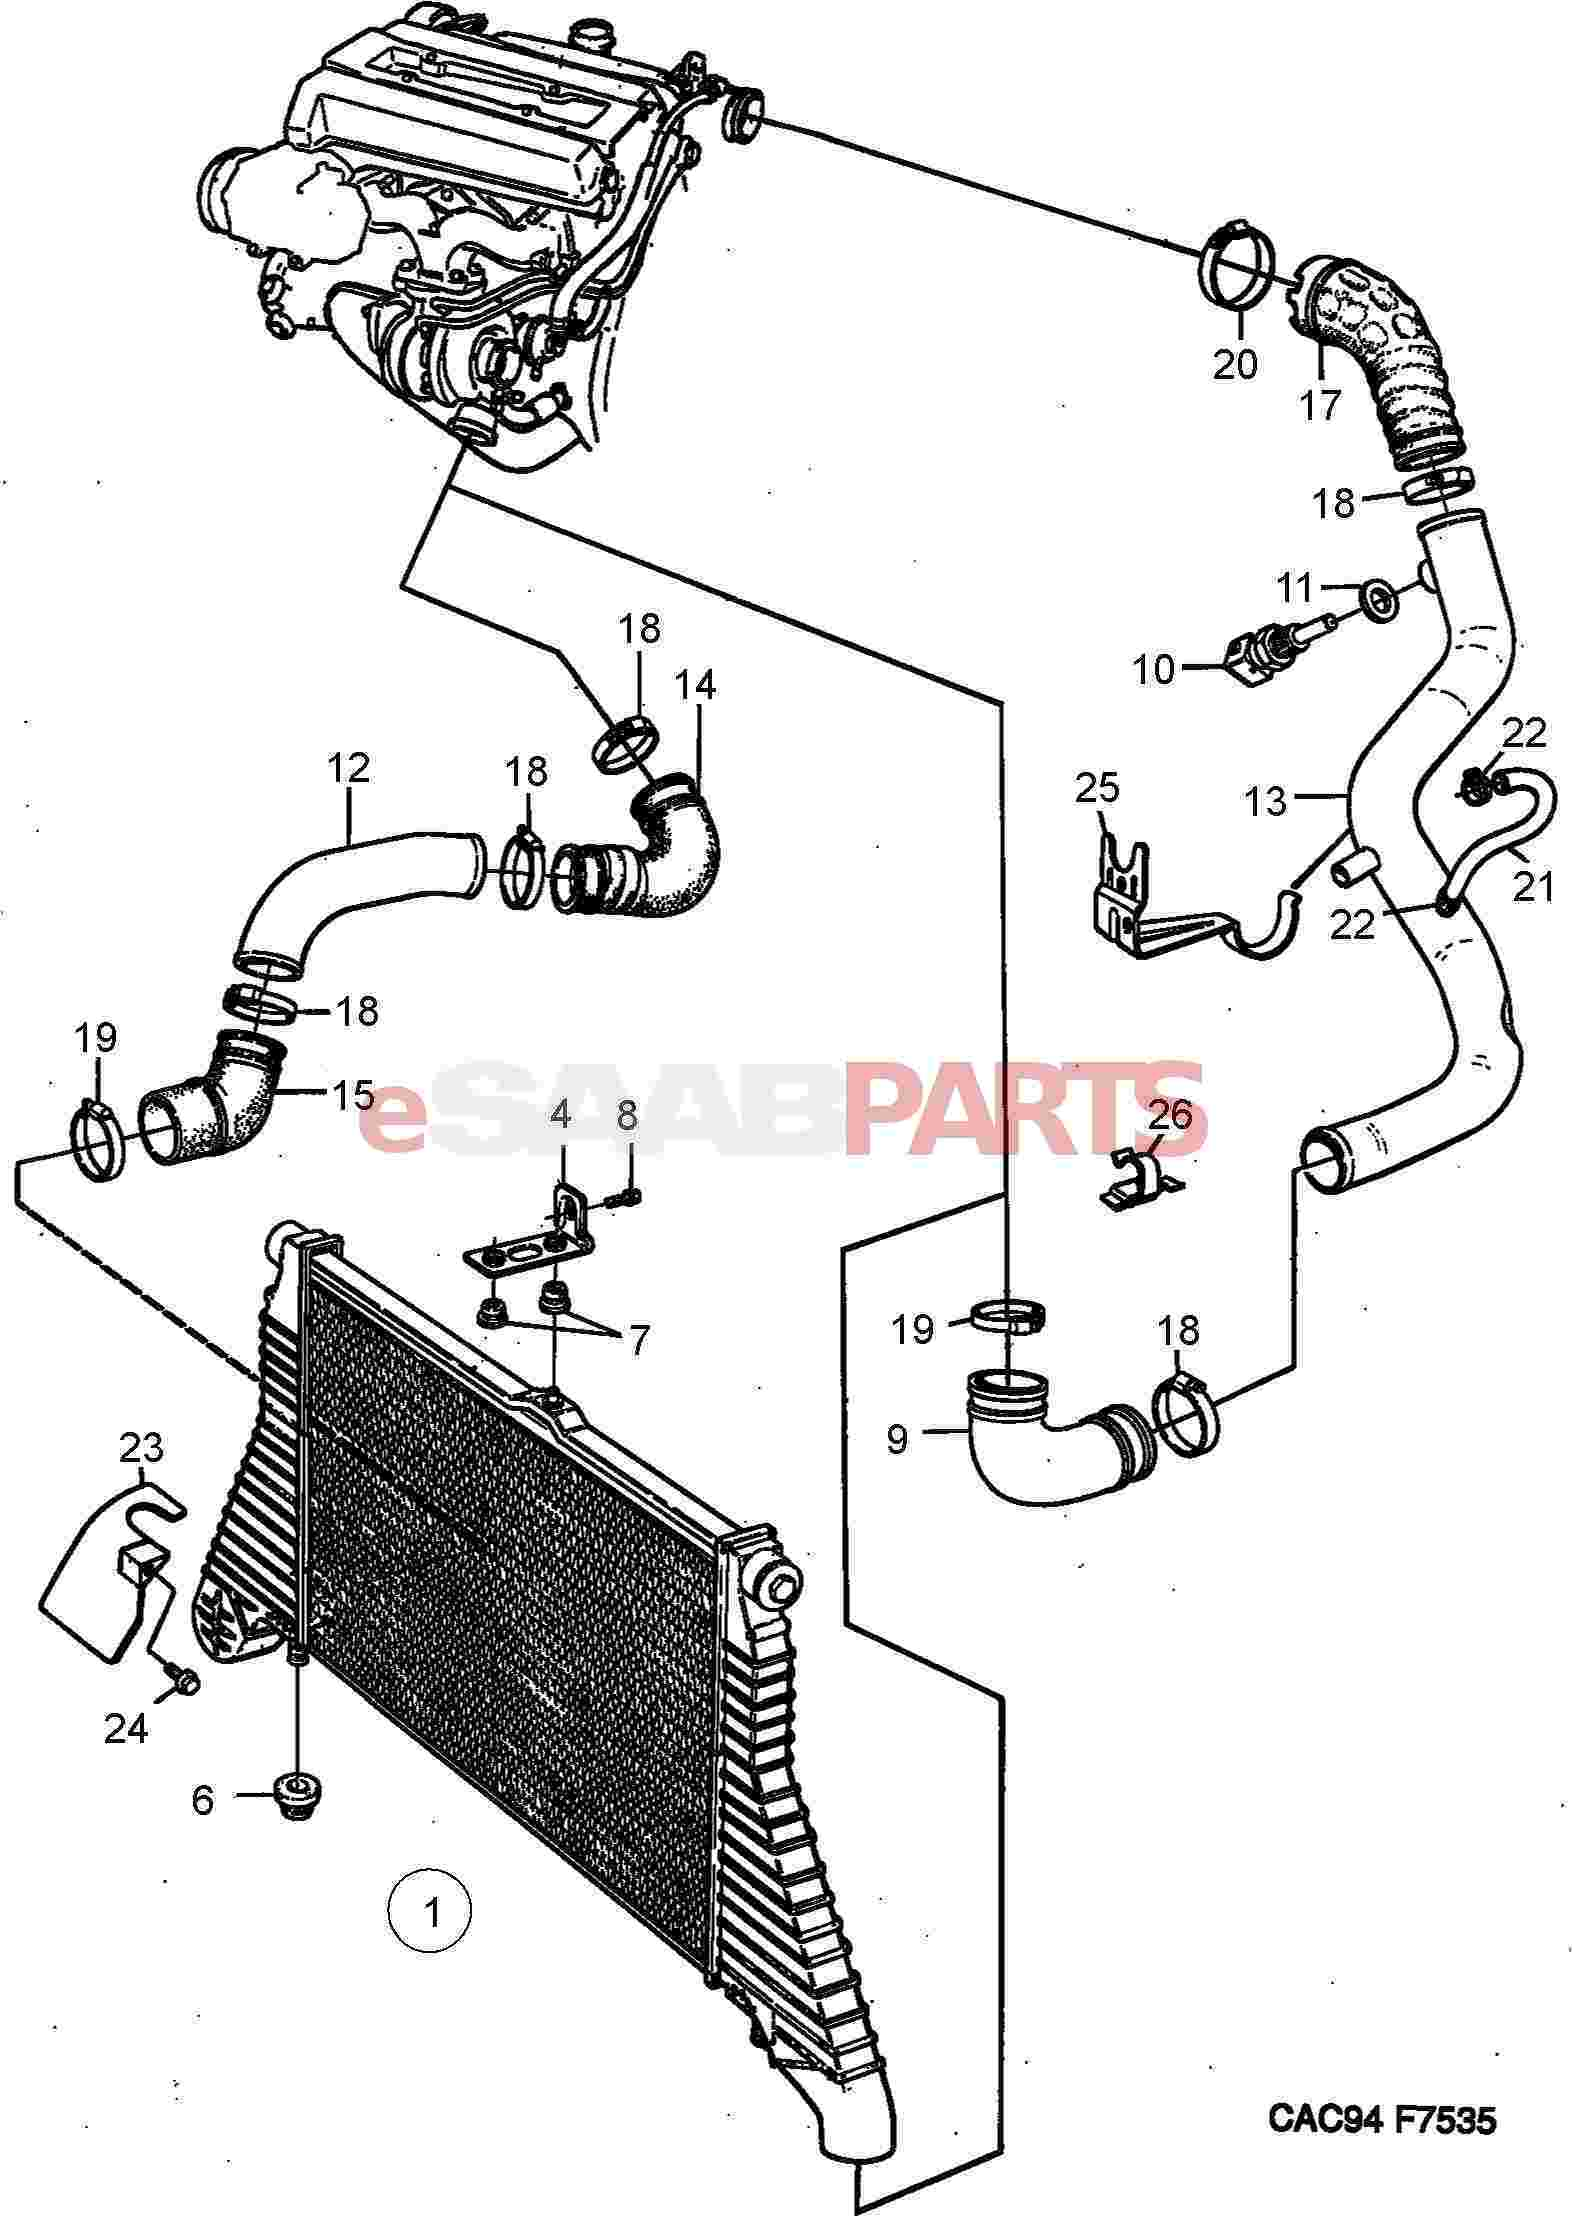 1987 ford thunderbird sunroof wiring diagram